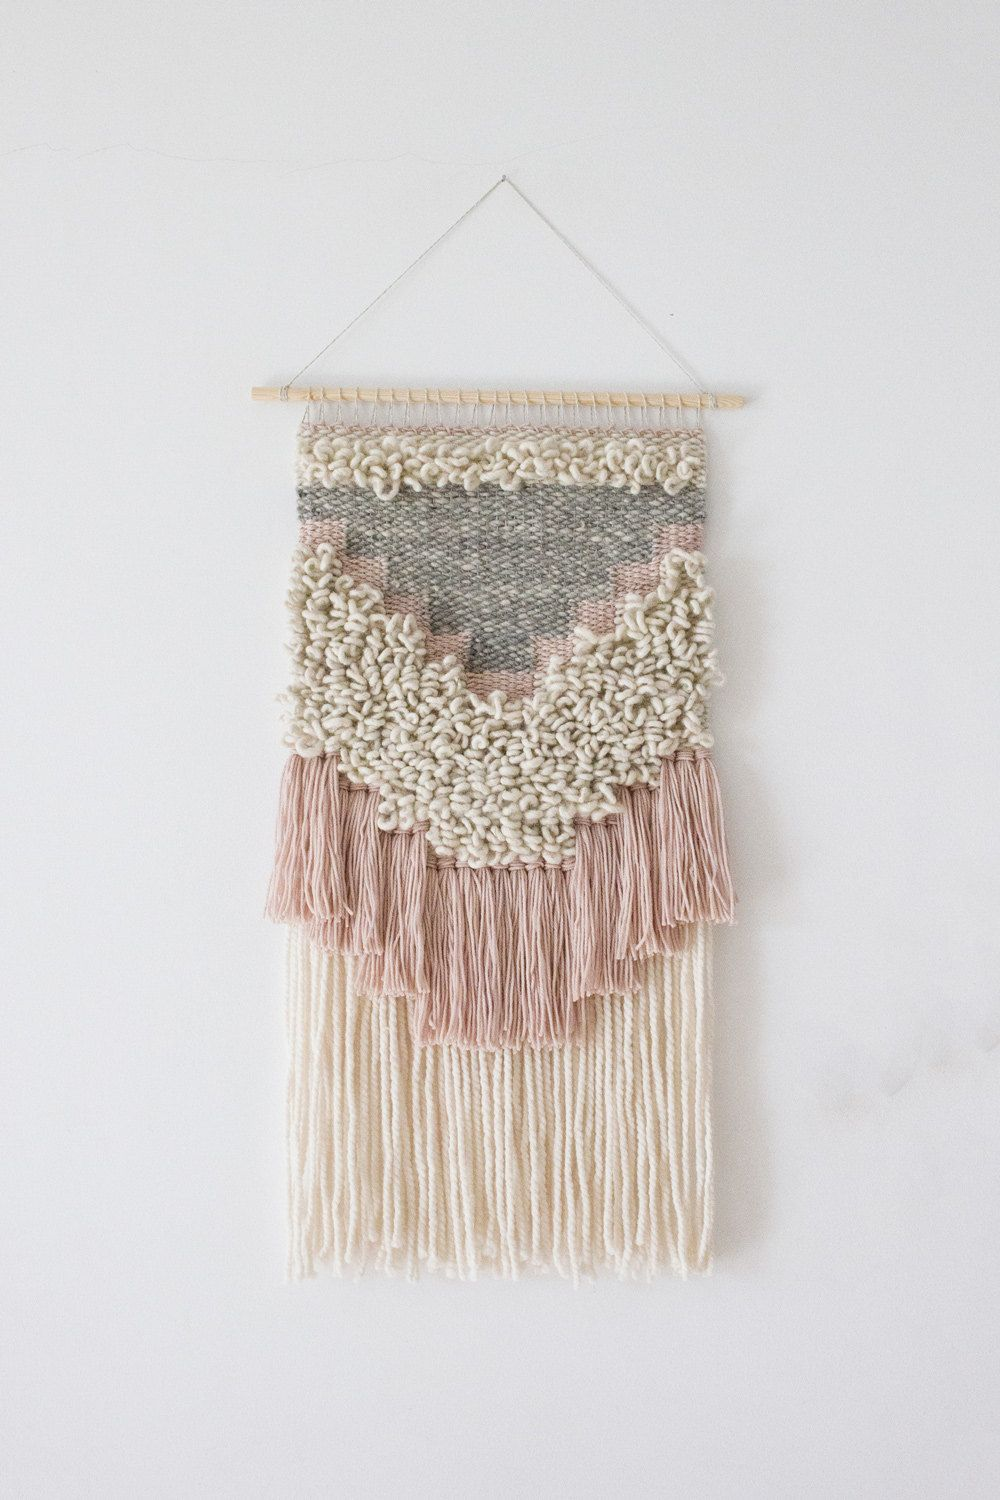 Woven Wall Hanging Woven Wall Weaving Woven Tapestry